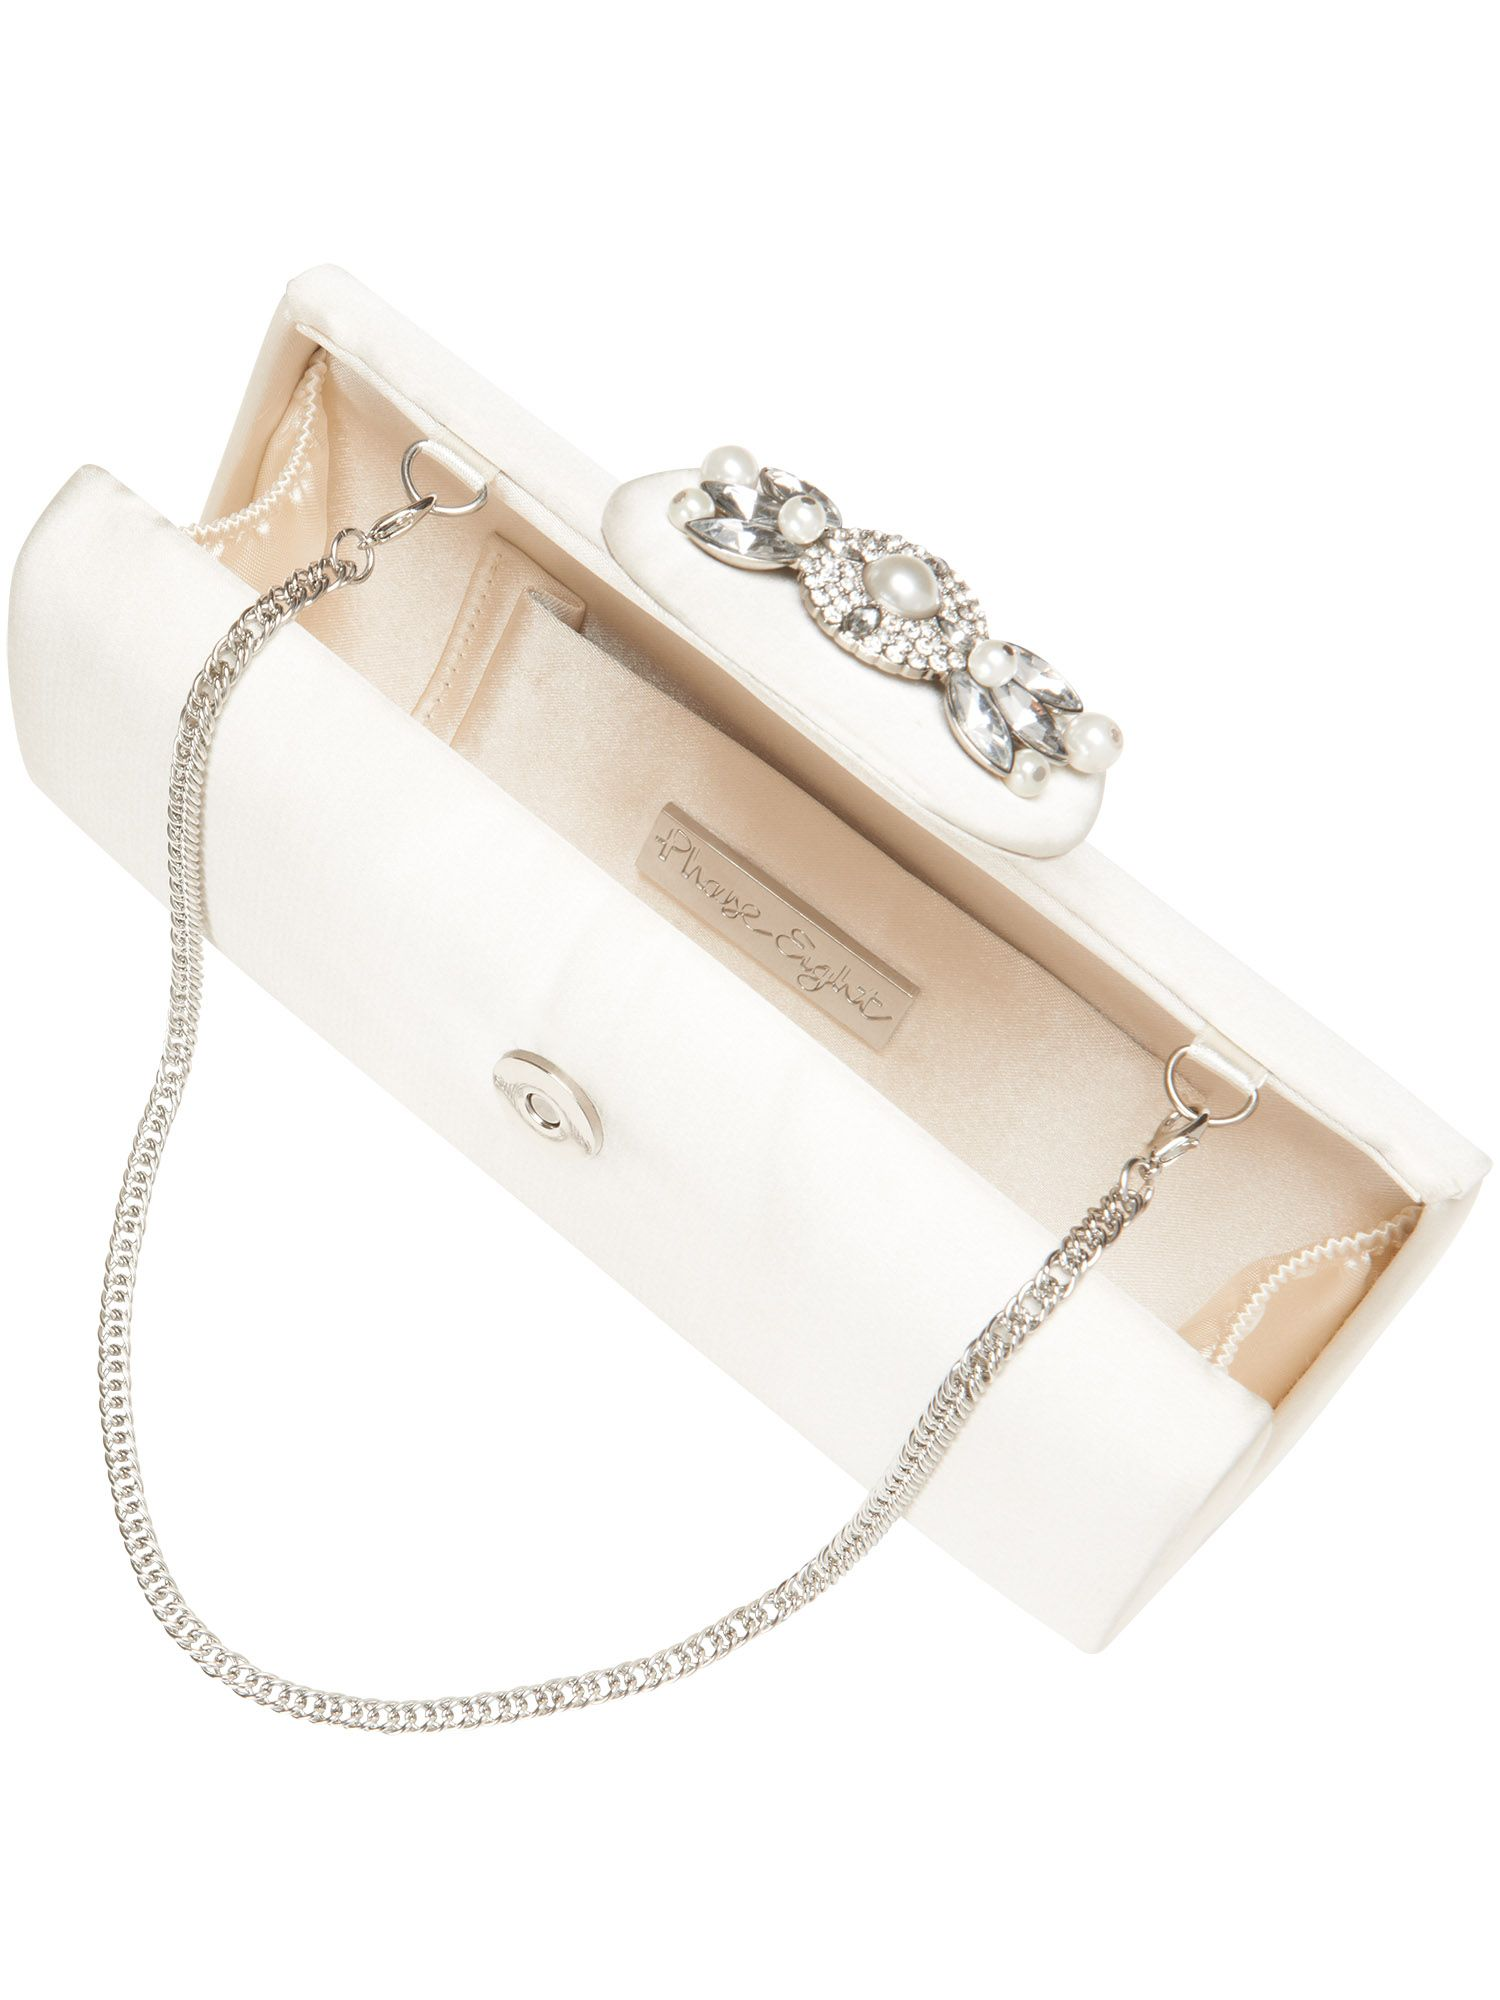 Jewel trim clutch bag